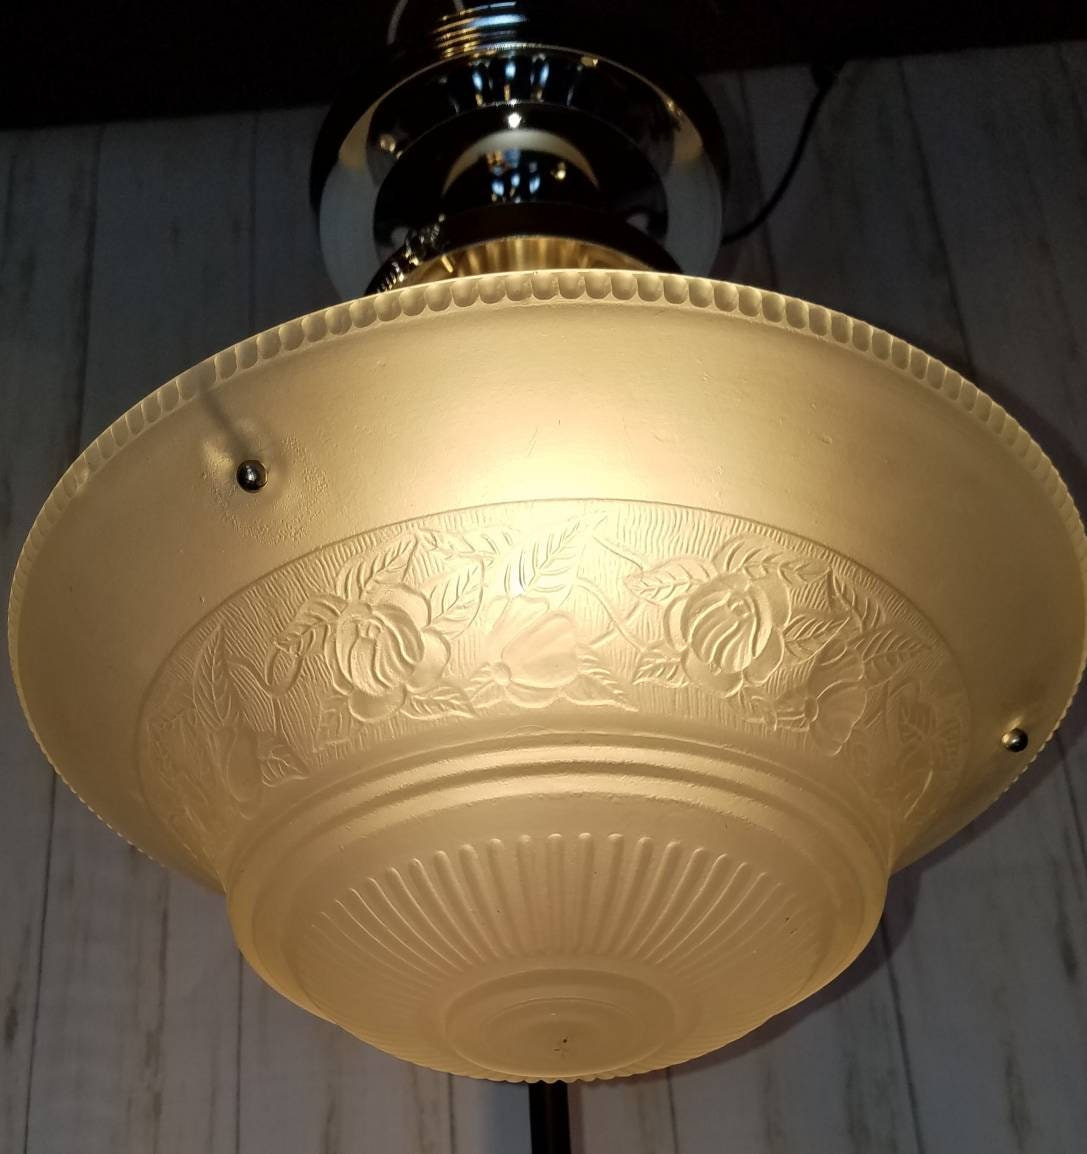 Vintage ceiling light fixture heavy glass floral shade working